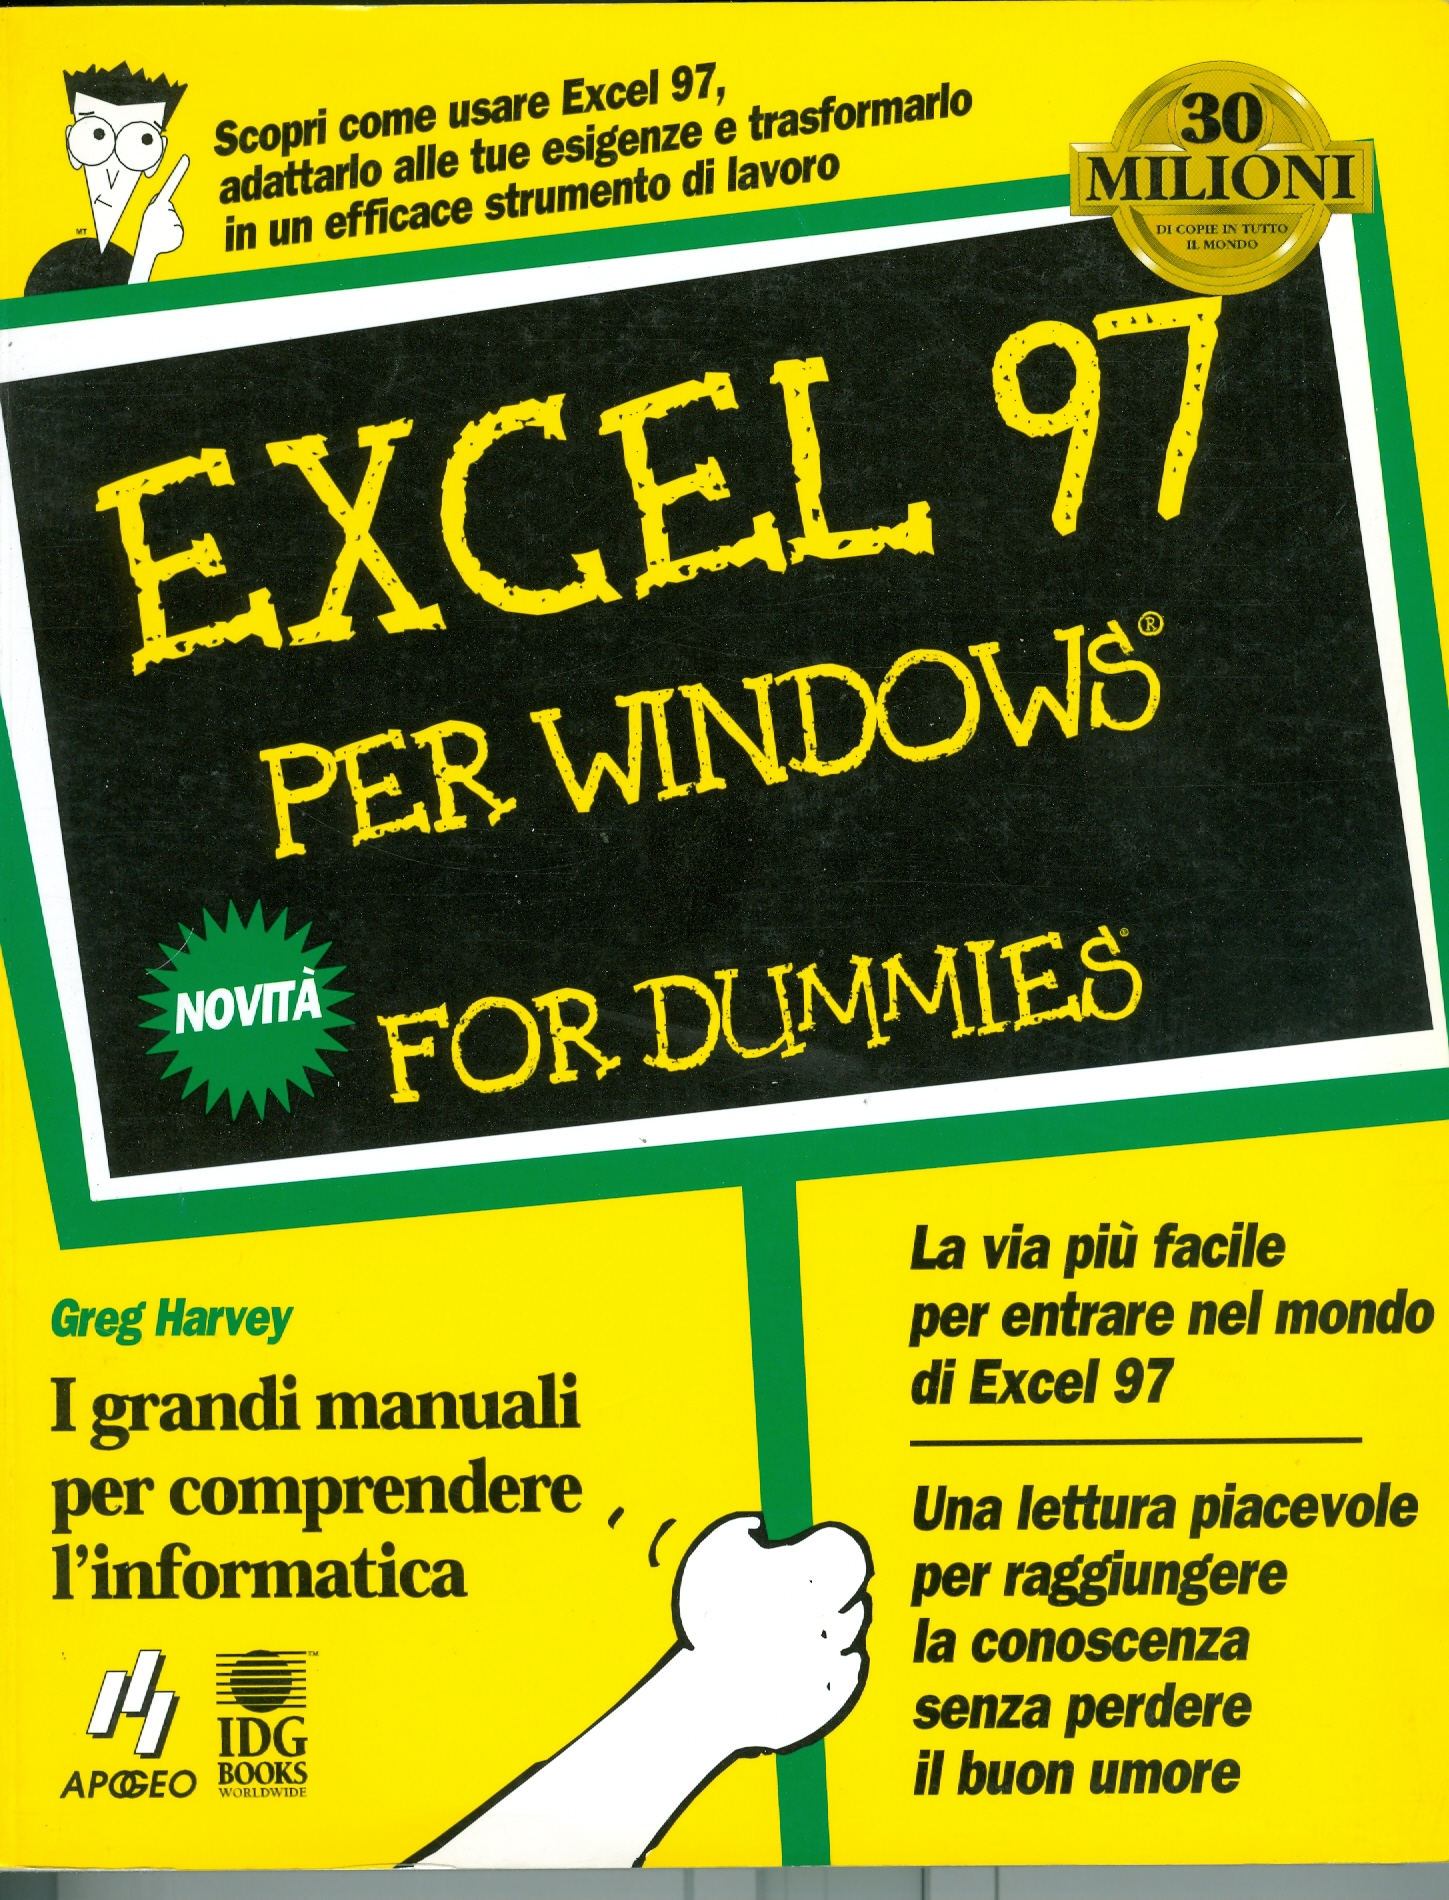 Excel '97 per Windows for Dummies